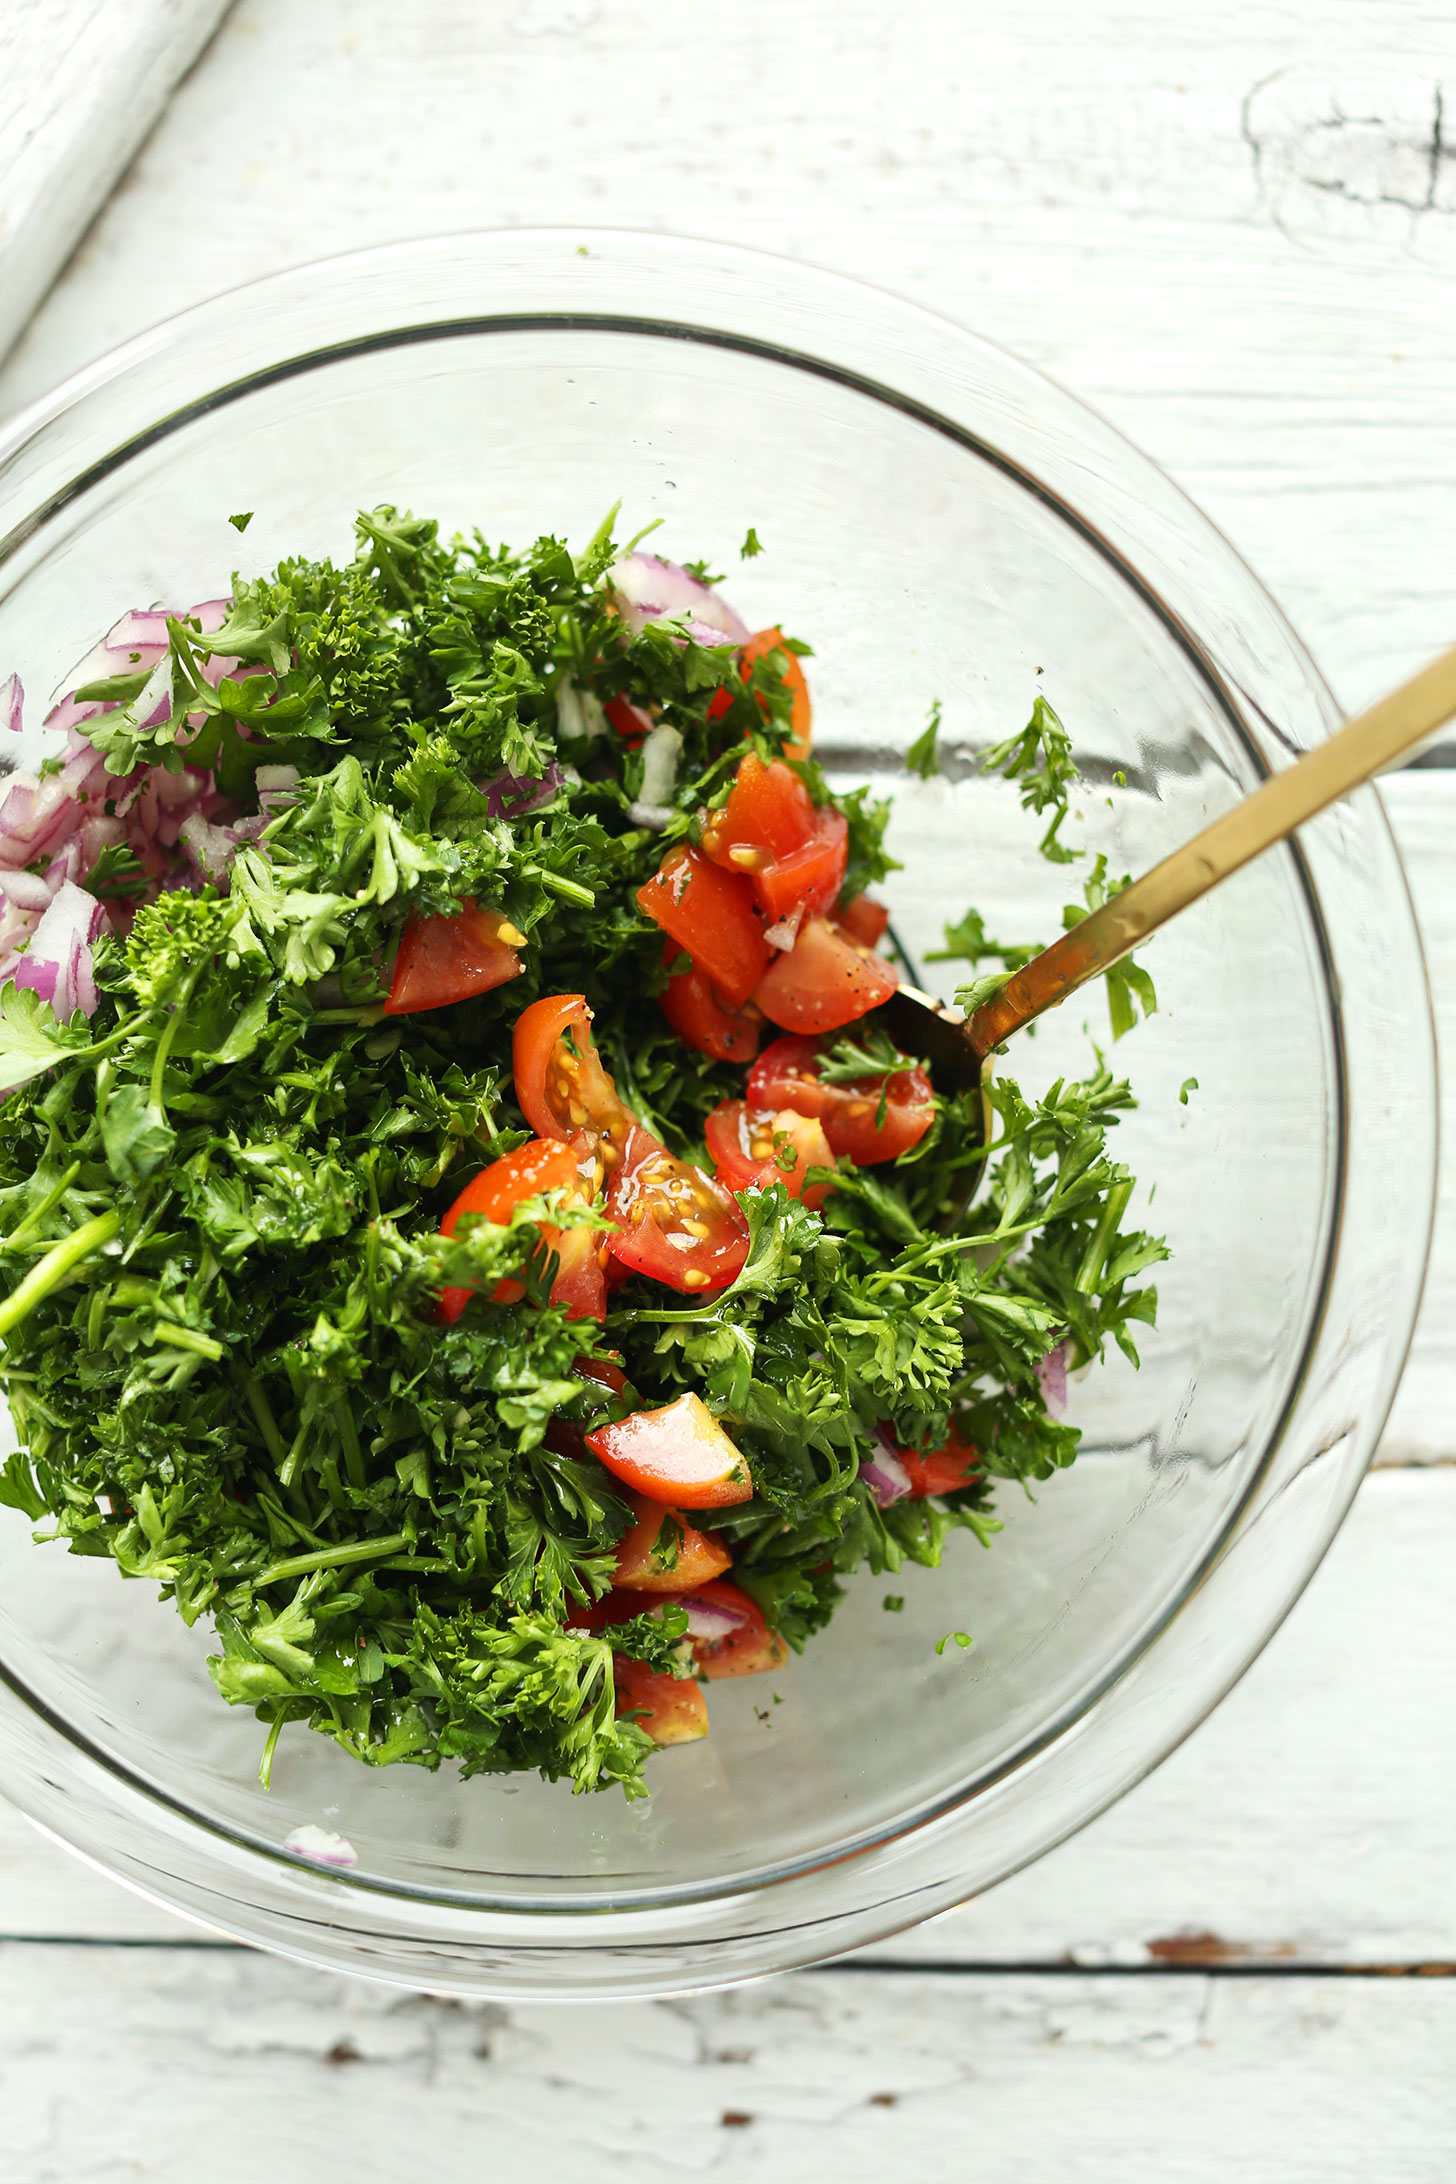 Making parsley salad for our Chickpea Shawarma Dip recipe